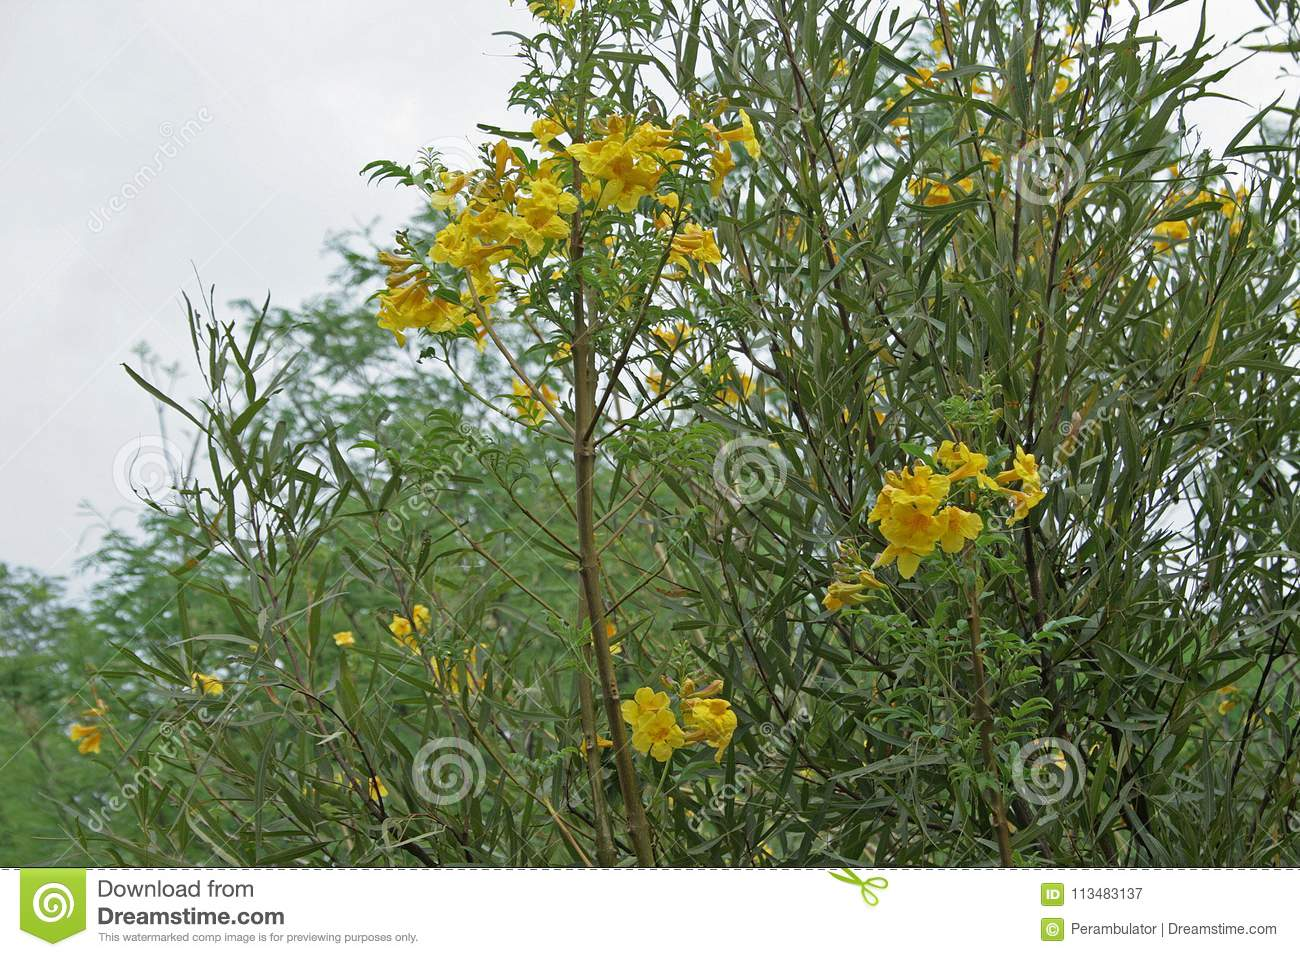 Yellow flowers on a tree in nature stock image image of small yellow flower clusters on a tree with green foliage in the wilderness mightylinksfo